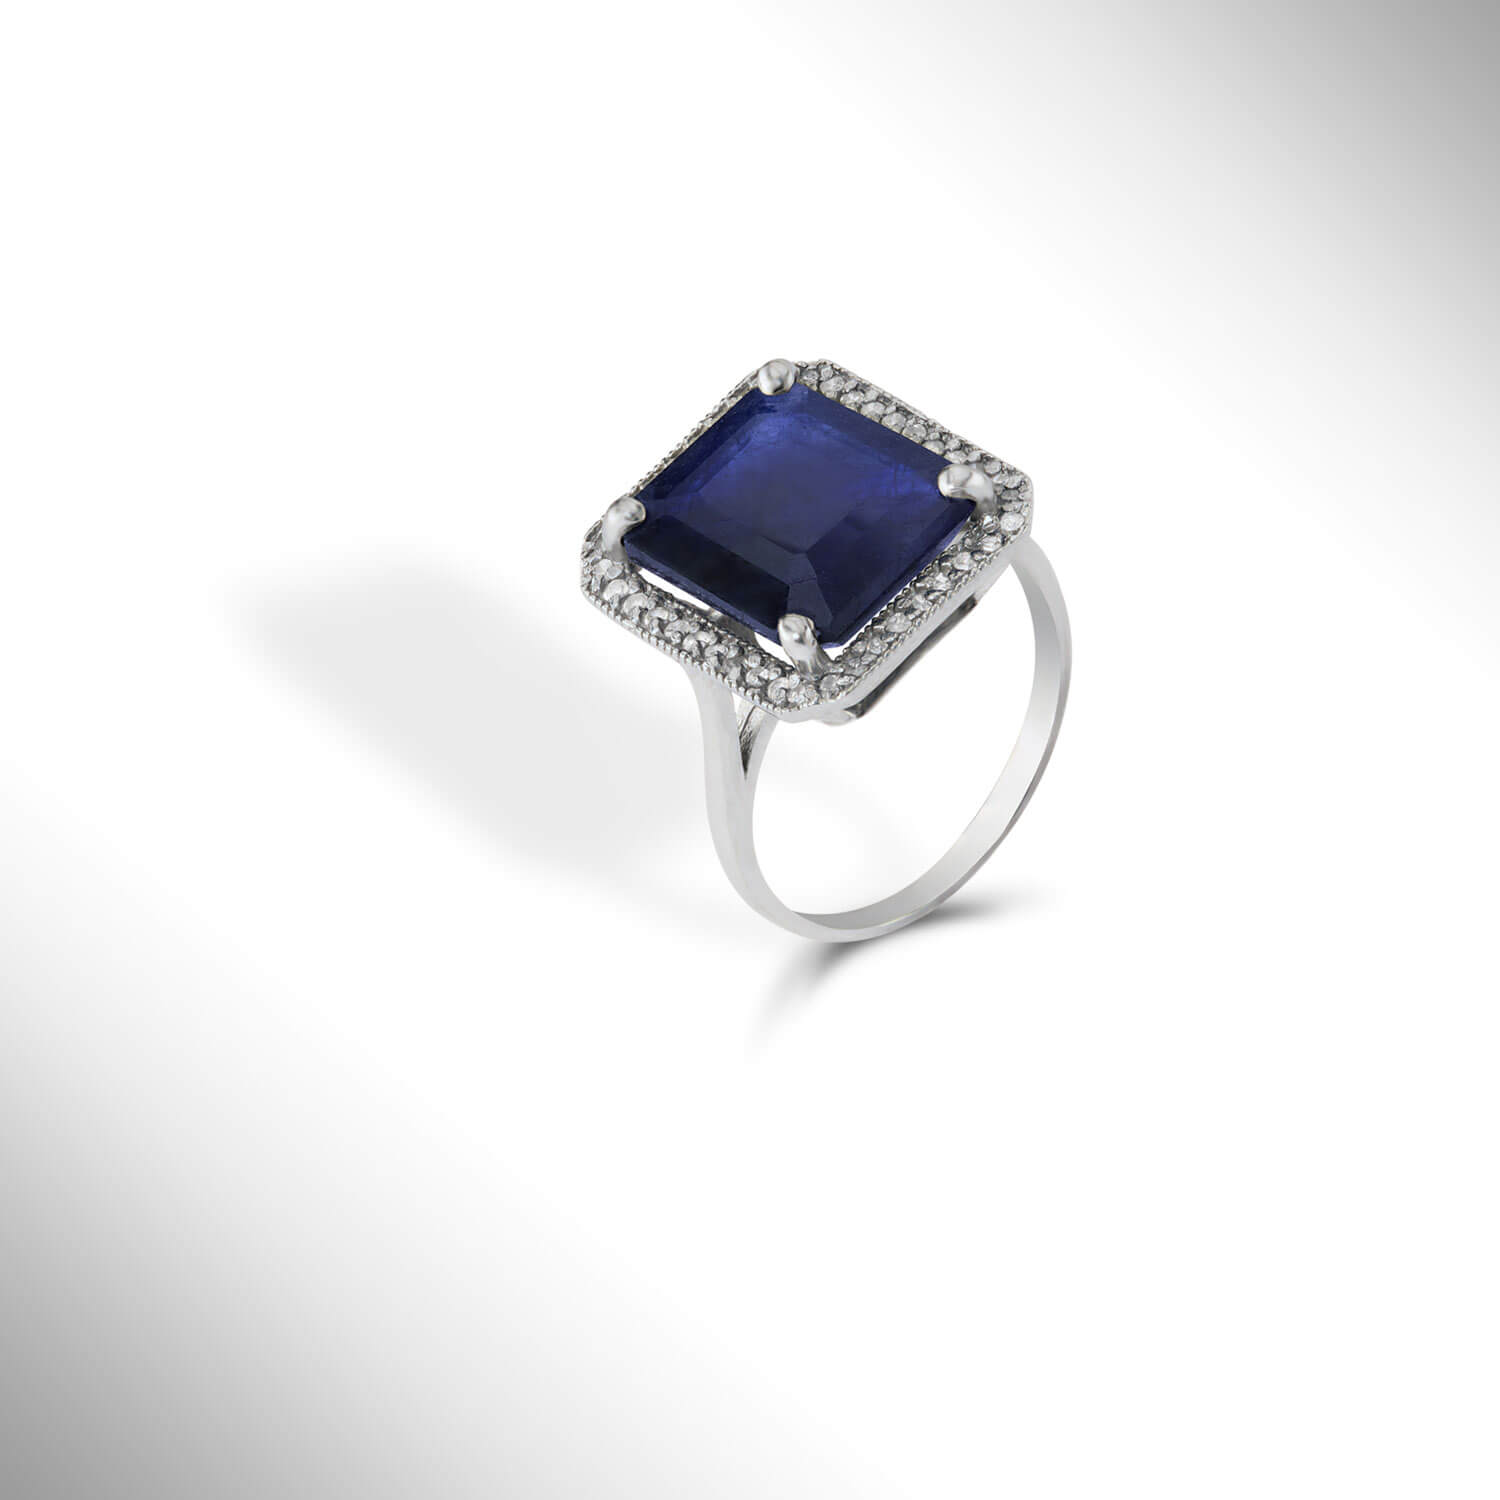 Sapphire Halo Ring 6.6 ctw in 9ct White Gold